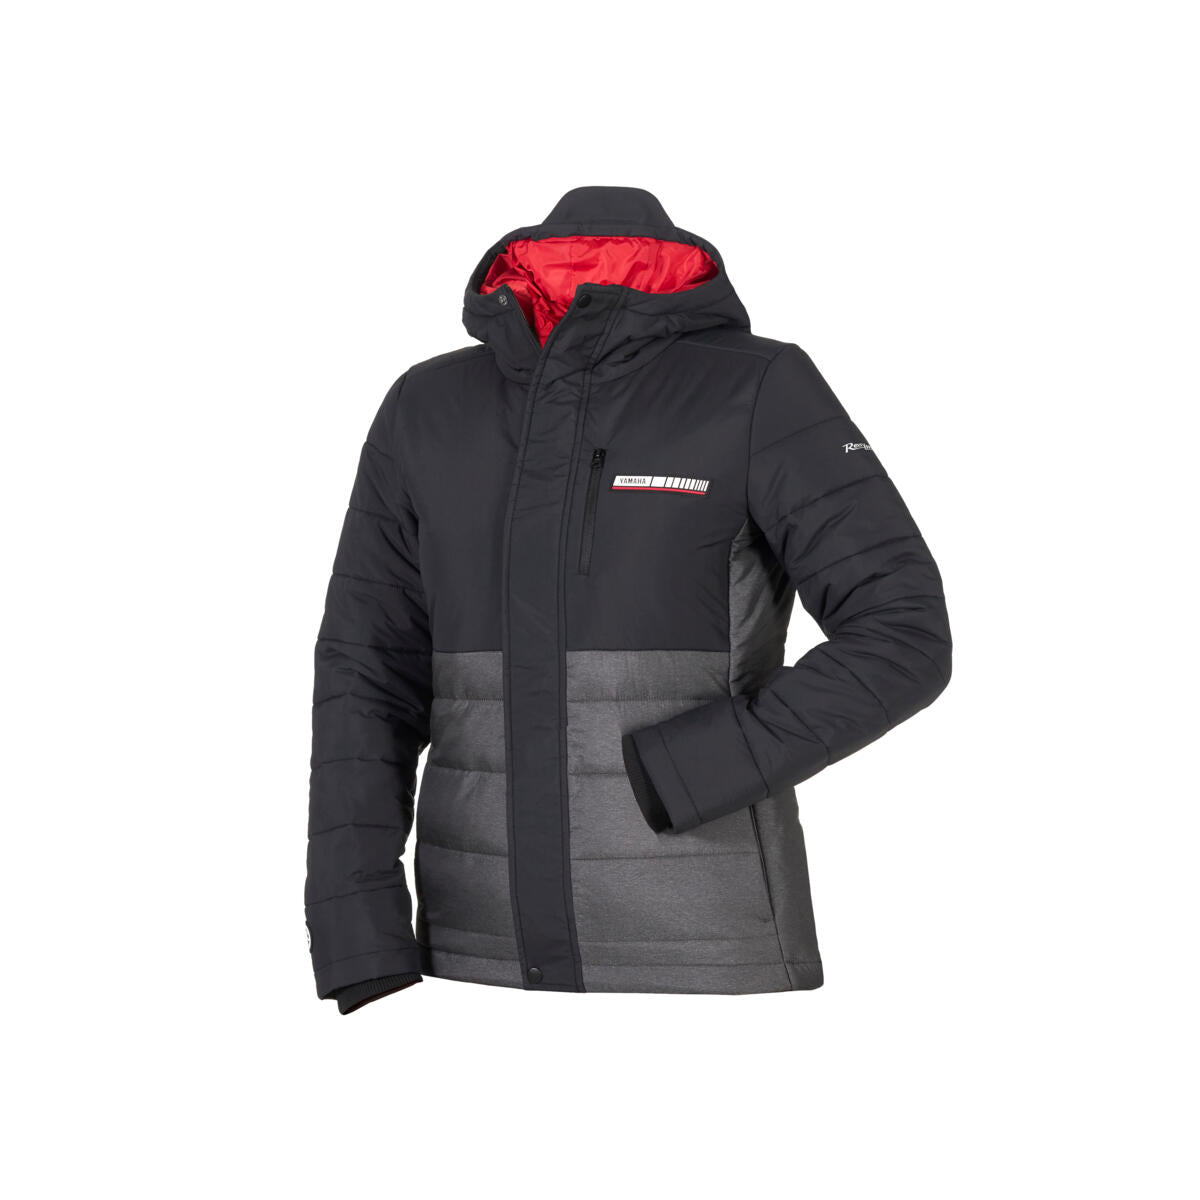 REVS Women's Outerwear Jacket